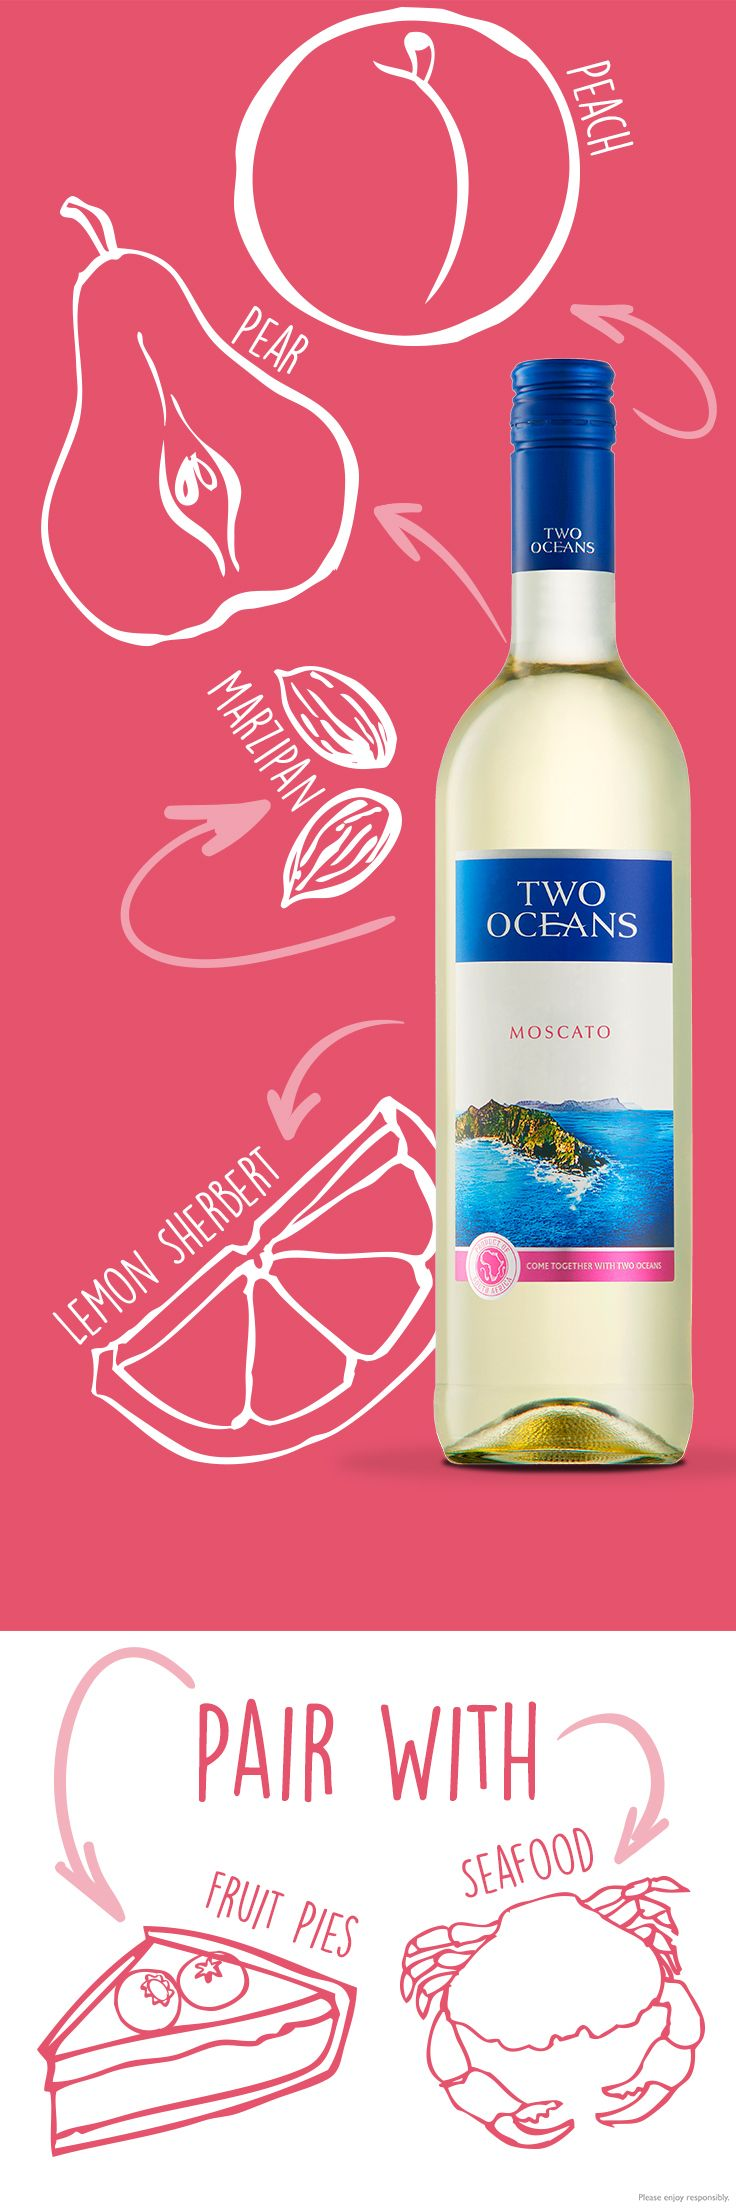 Two Oceans Moscato is a crisp, sweet, and fruity white wine. You can serve it chilled on its own or paired with creamy seafood or summer salads.